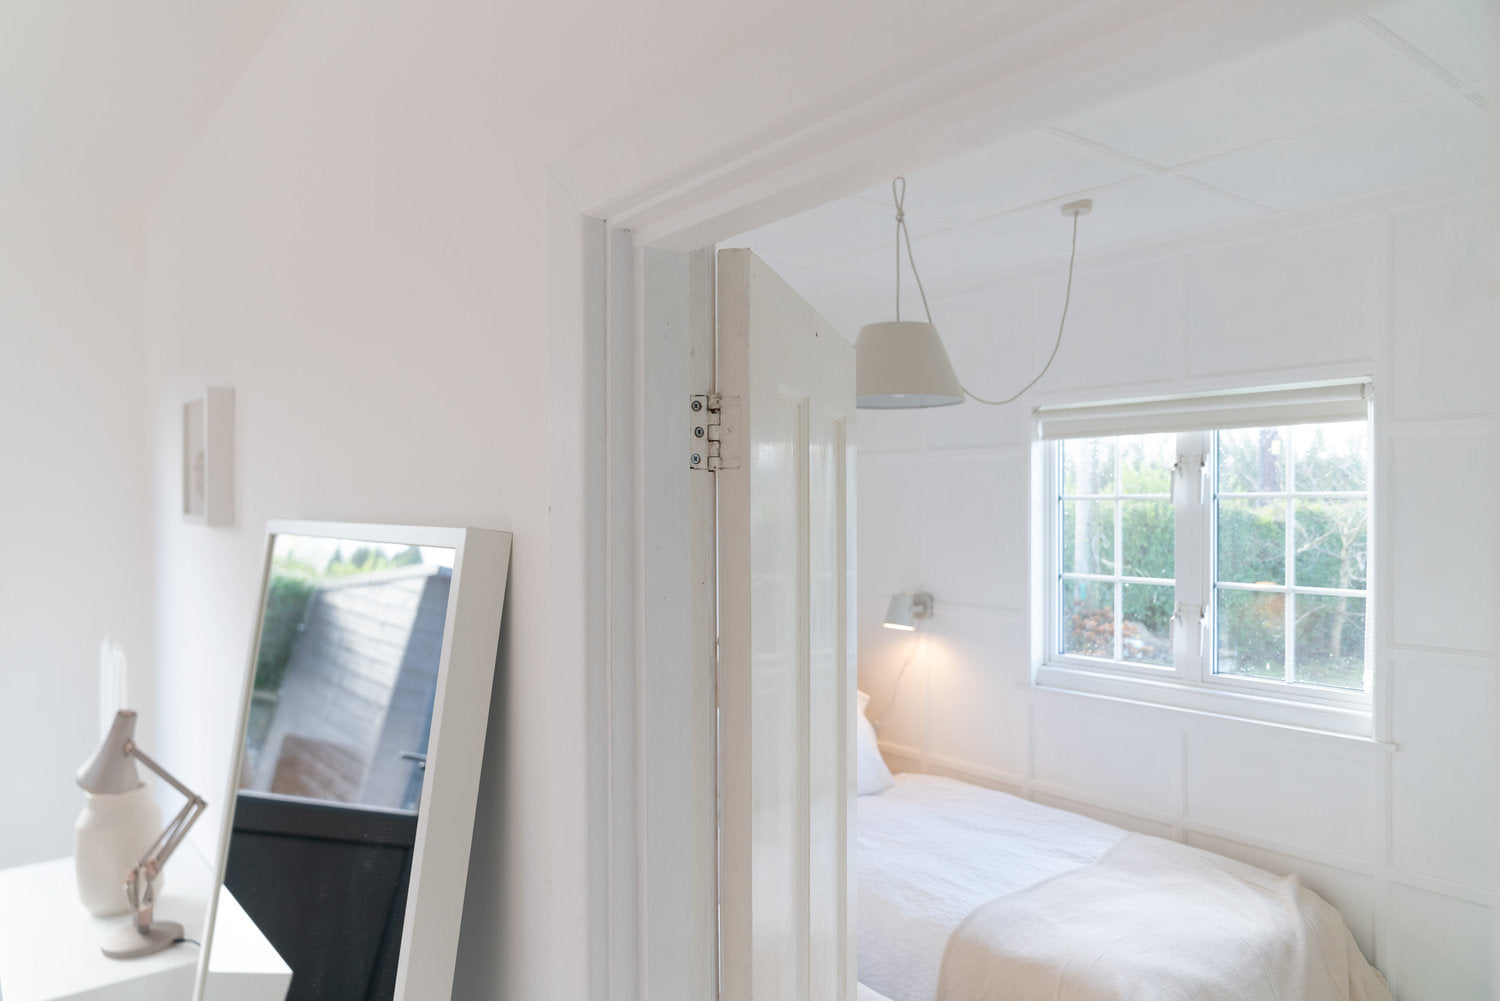 Interior view of modern cabin. Mirror, bed, lamp